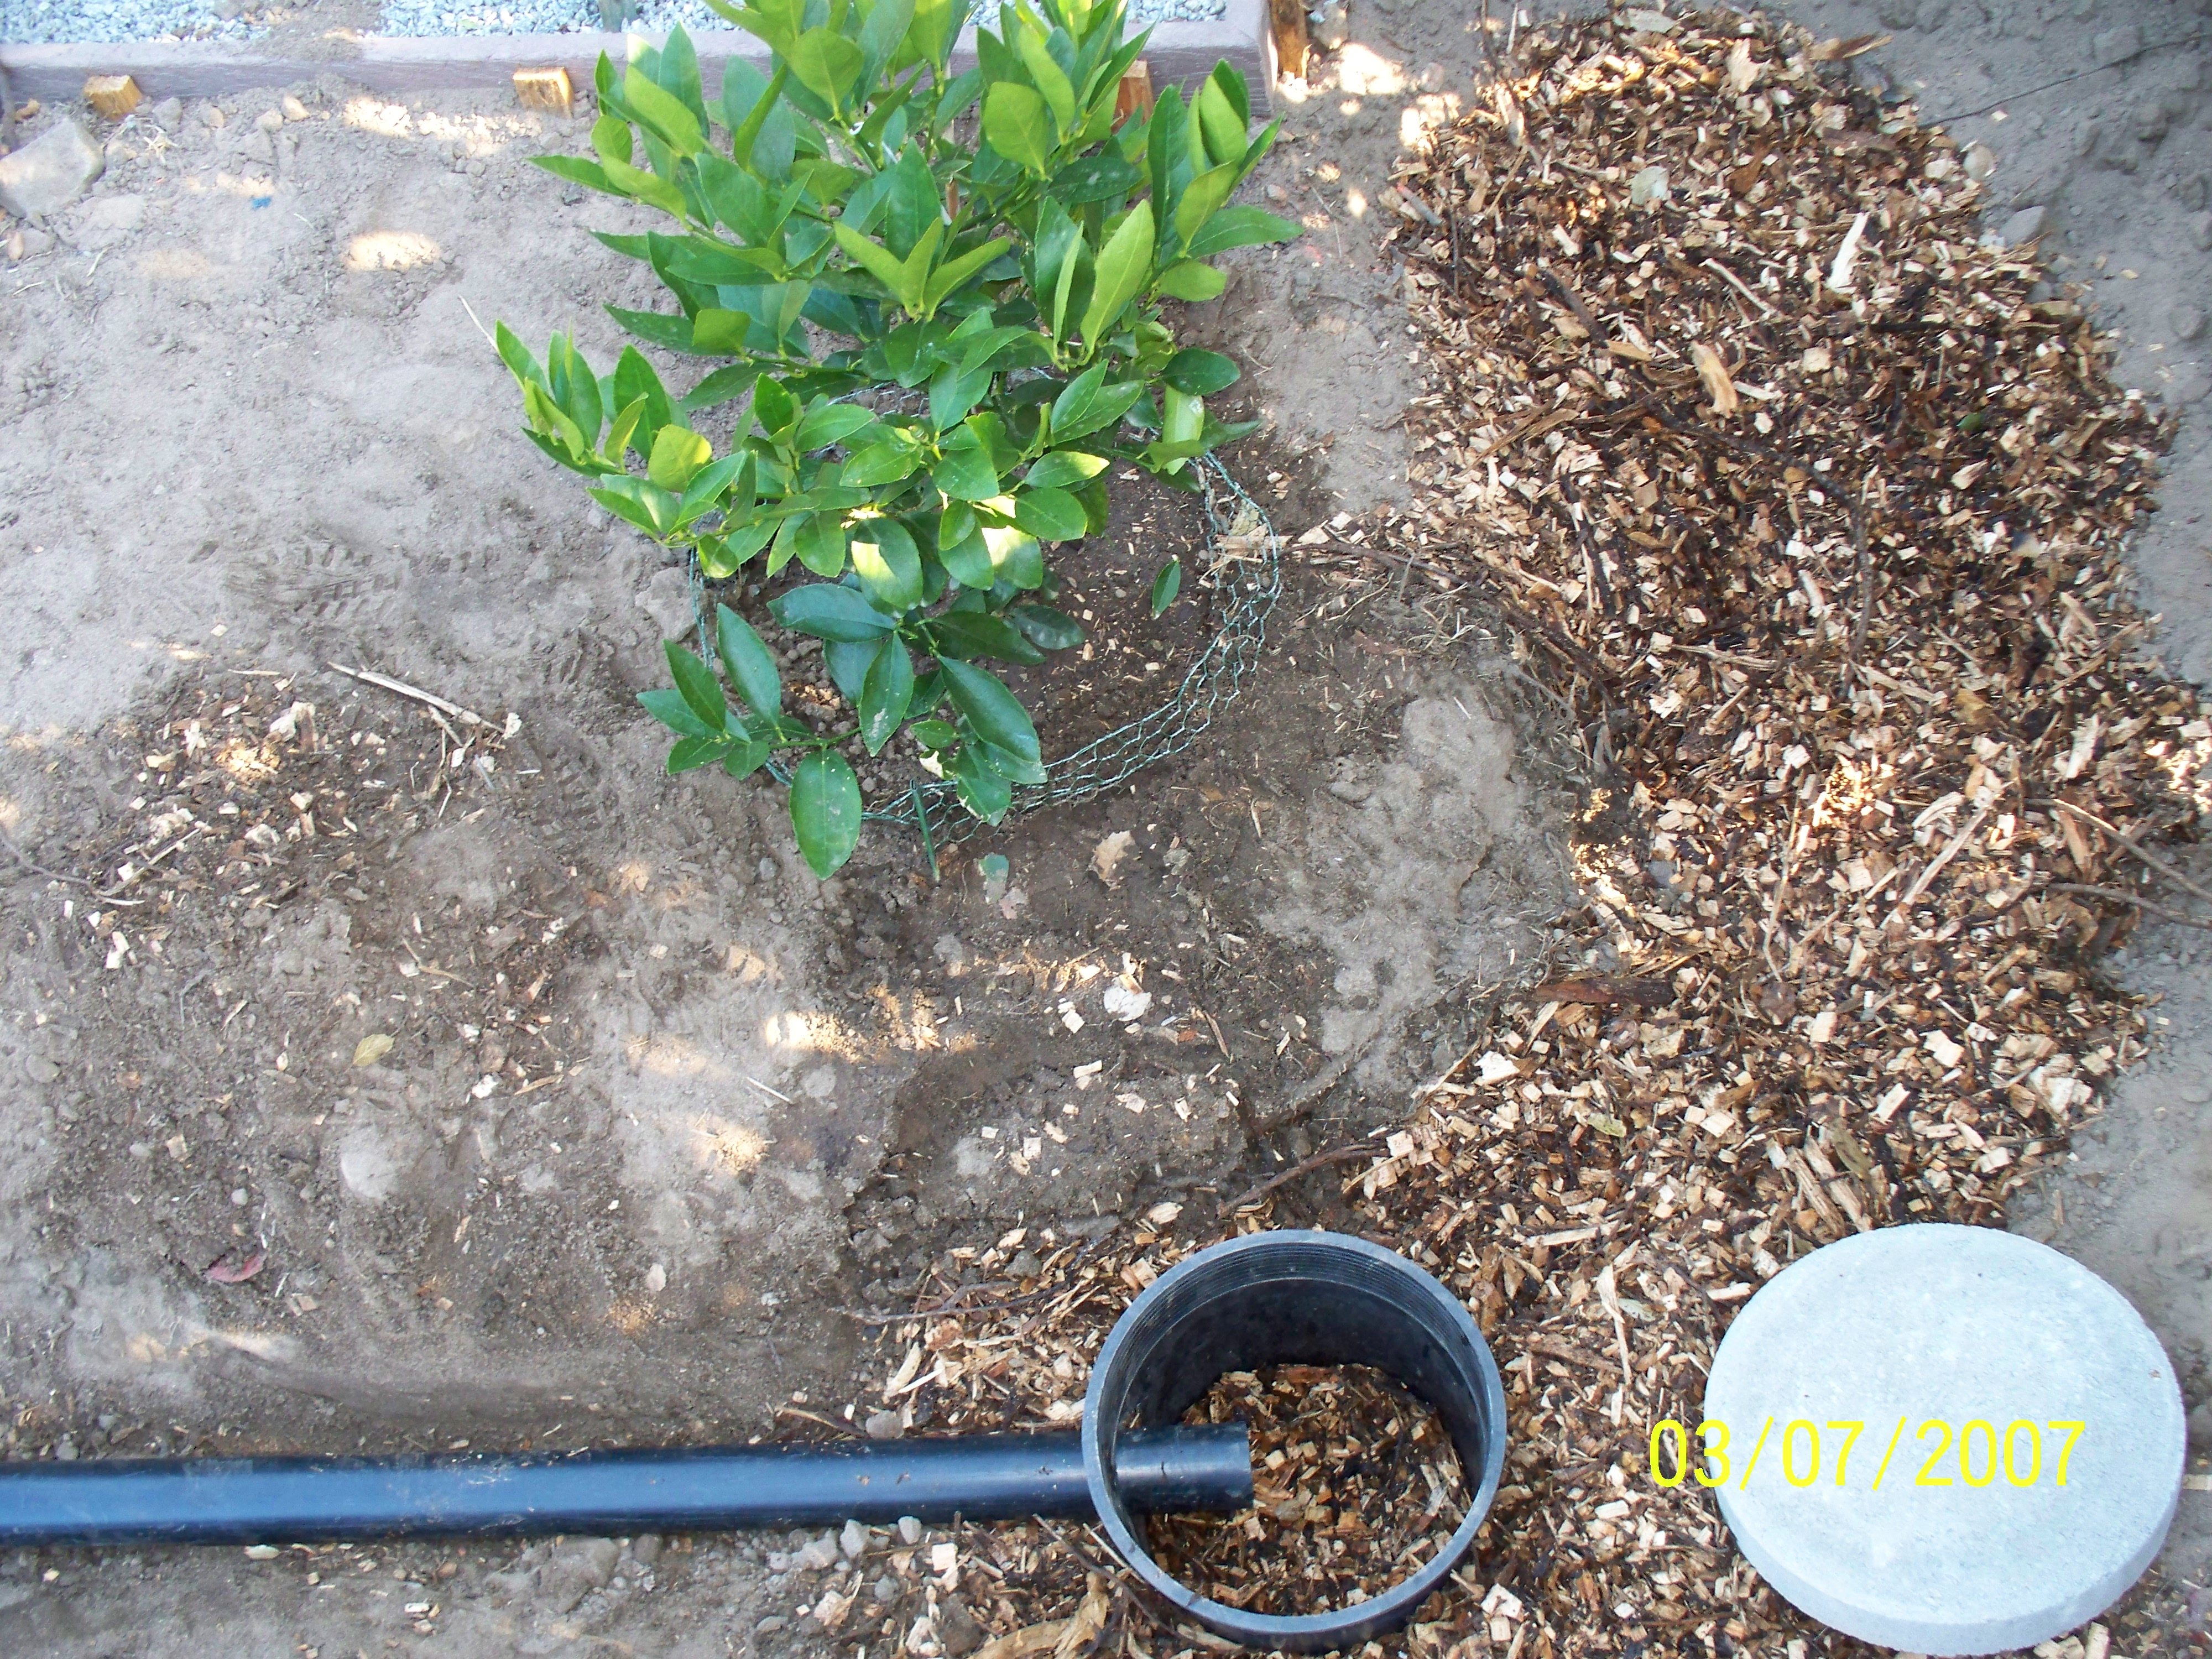 Greywater Central Coast Greywater Alliance